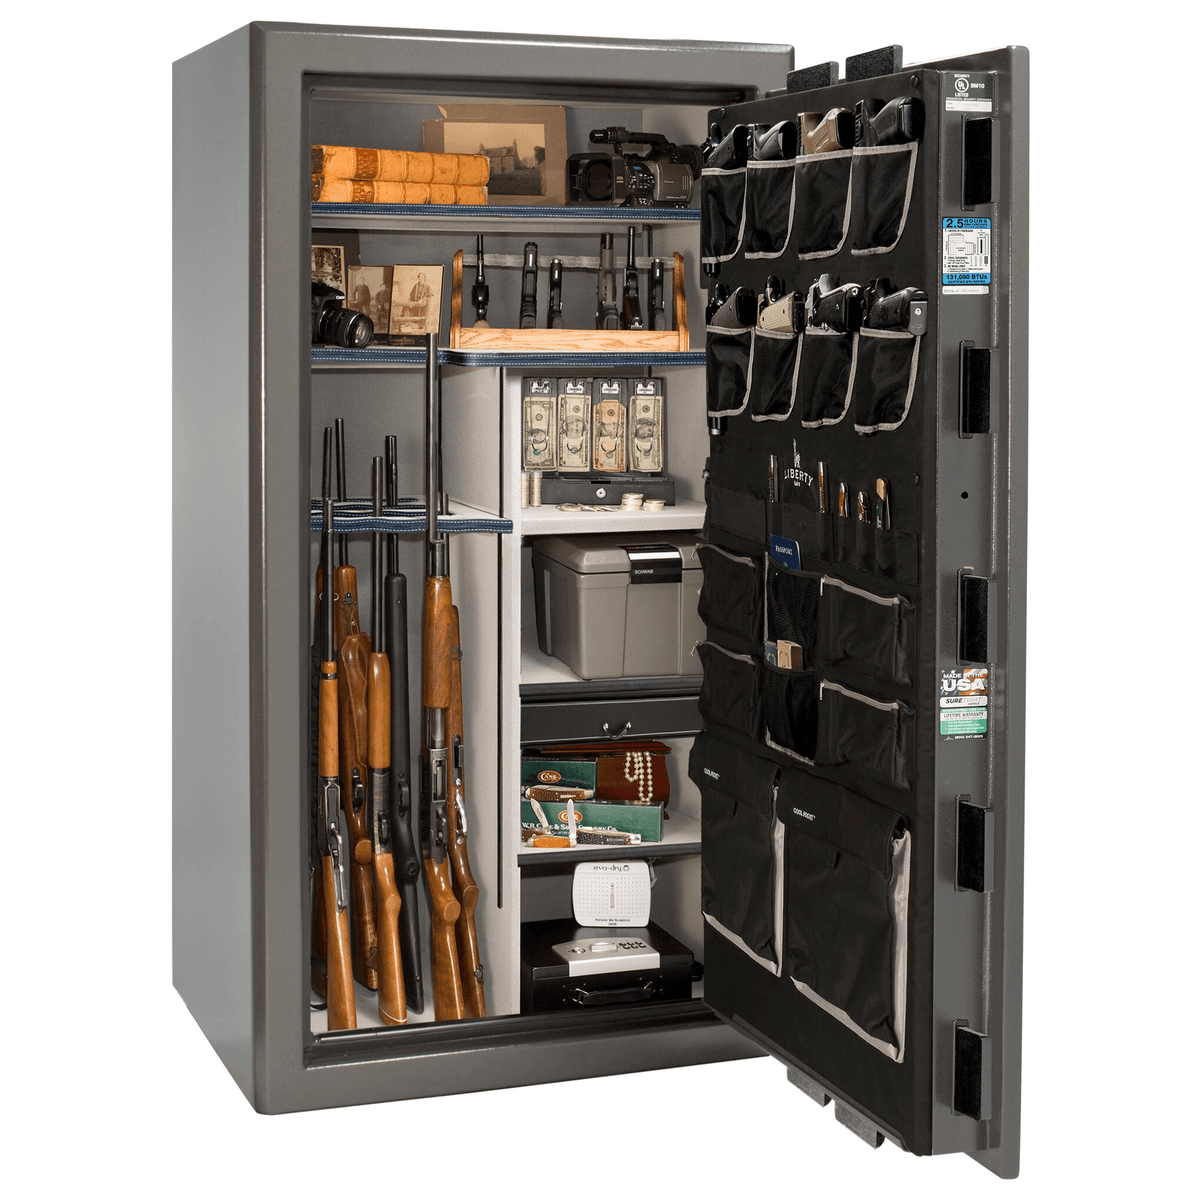 "Presidential | 40 | Level 8 Security | 150 Minute Fire Protection | Gray Gloss | Black Electronic Lock | 65.5""(H) x 36""(W) x 32""(D)"